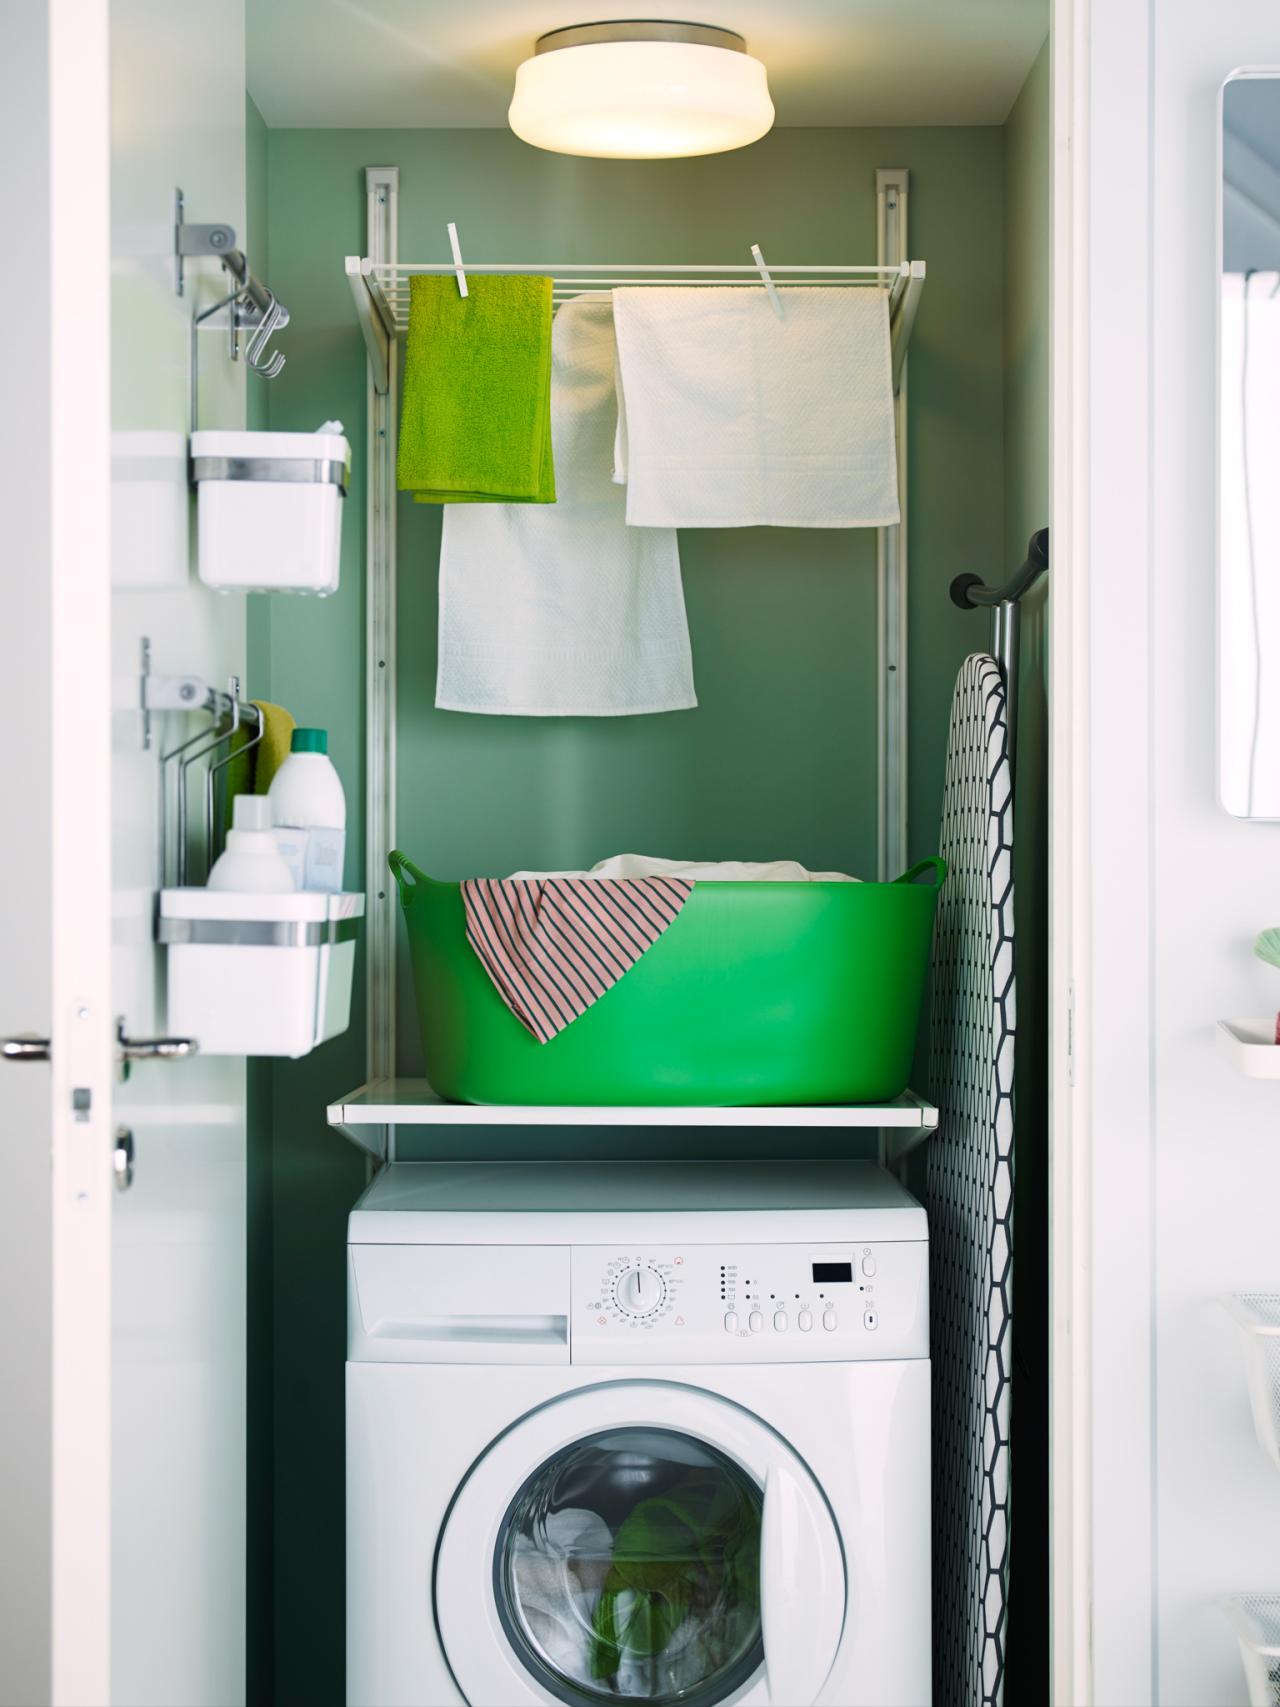 Laundry room cabinet ideas pictures options tips advice hgtv - Laundry room designs small spaces set ...